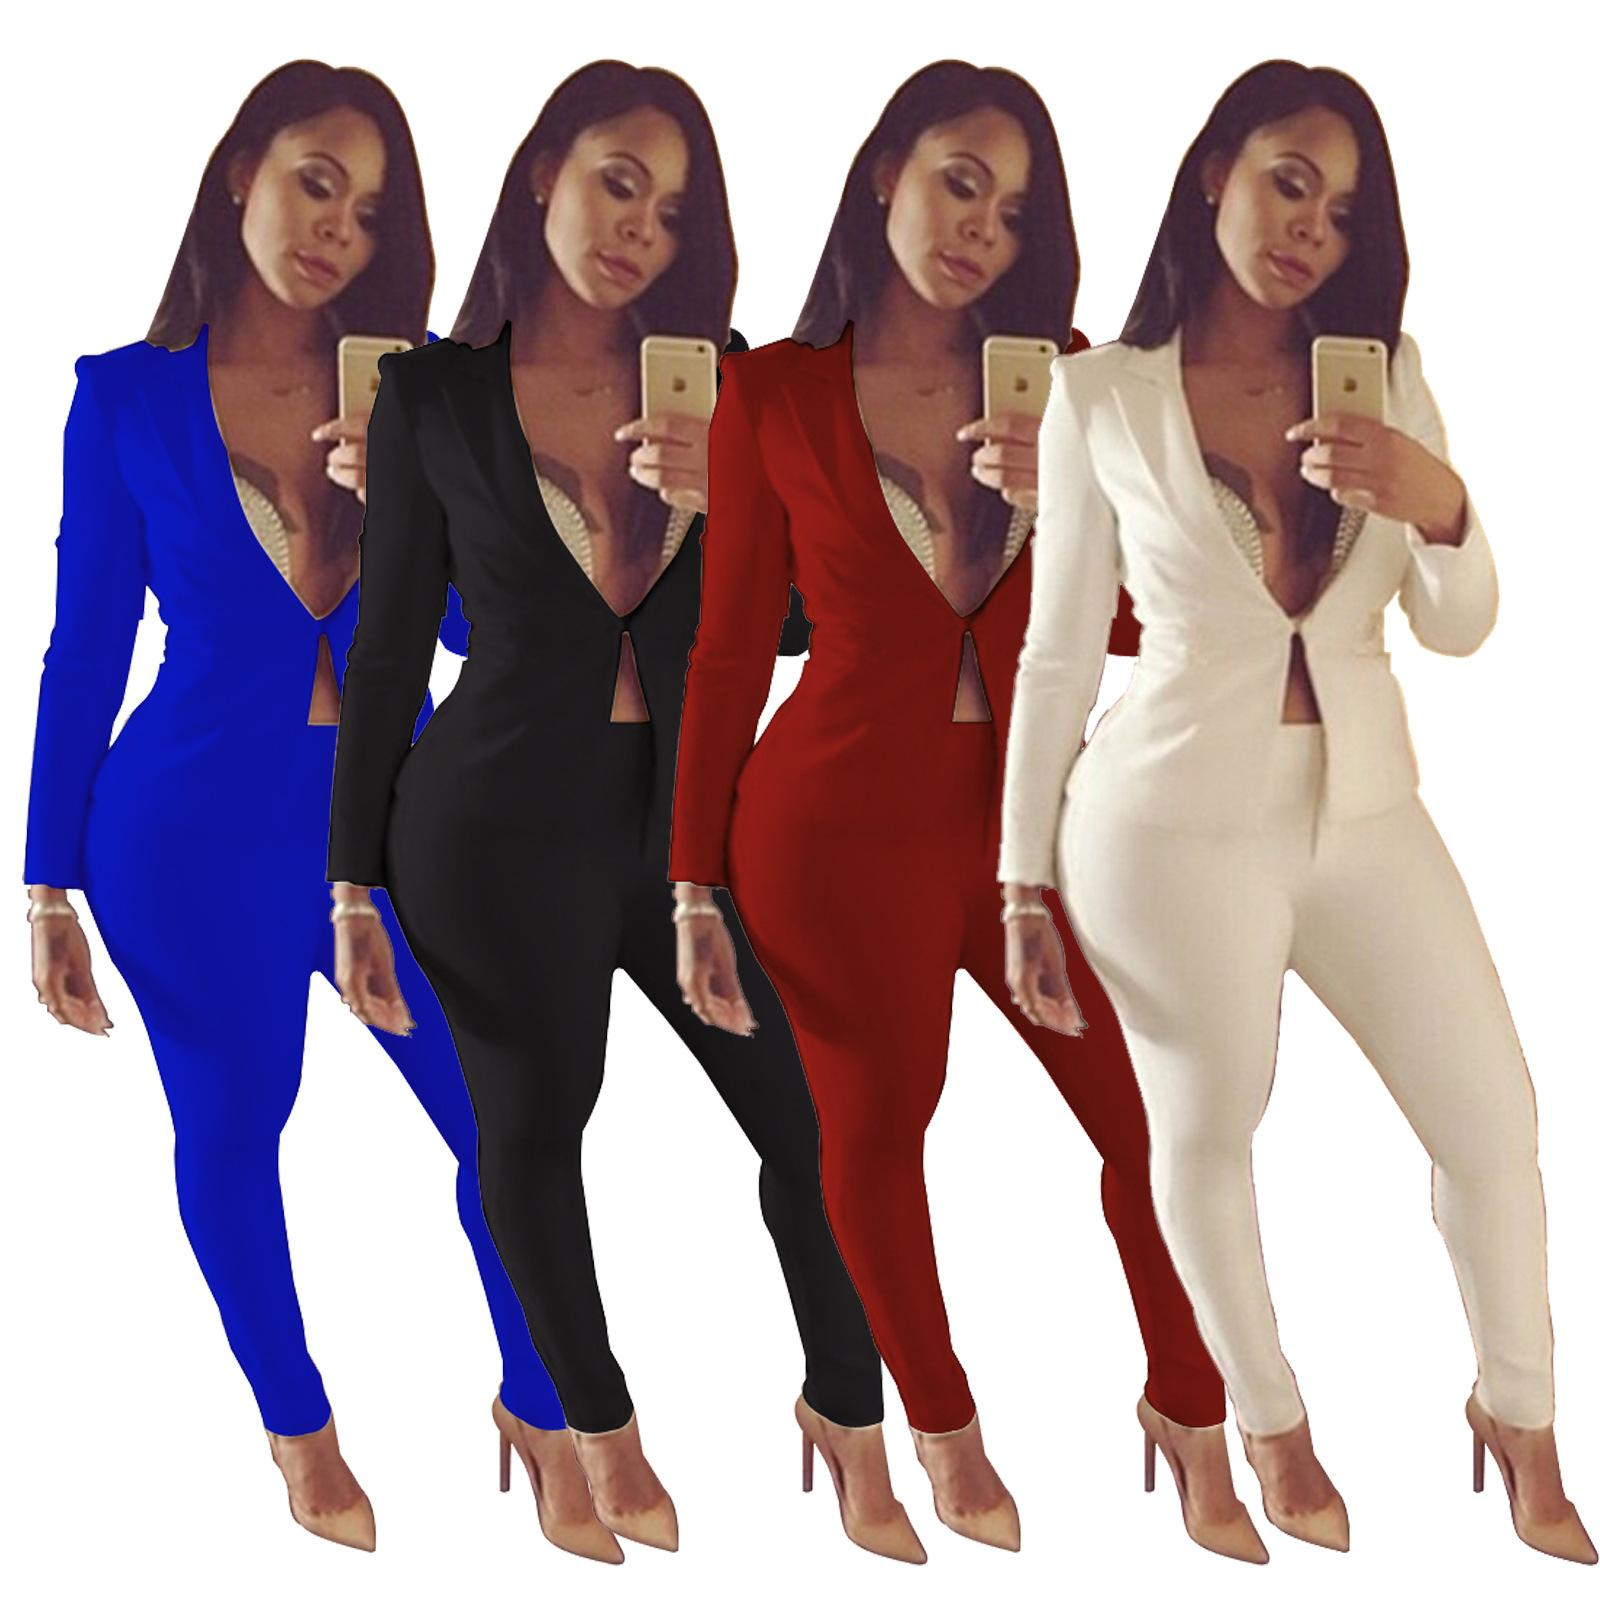 new winter autumn fashion womens clothing 2 piece pants sets solid white plus size bodycon outfits sexy women set hight quality free shippi